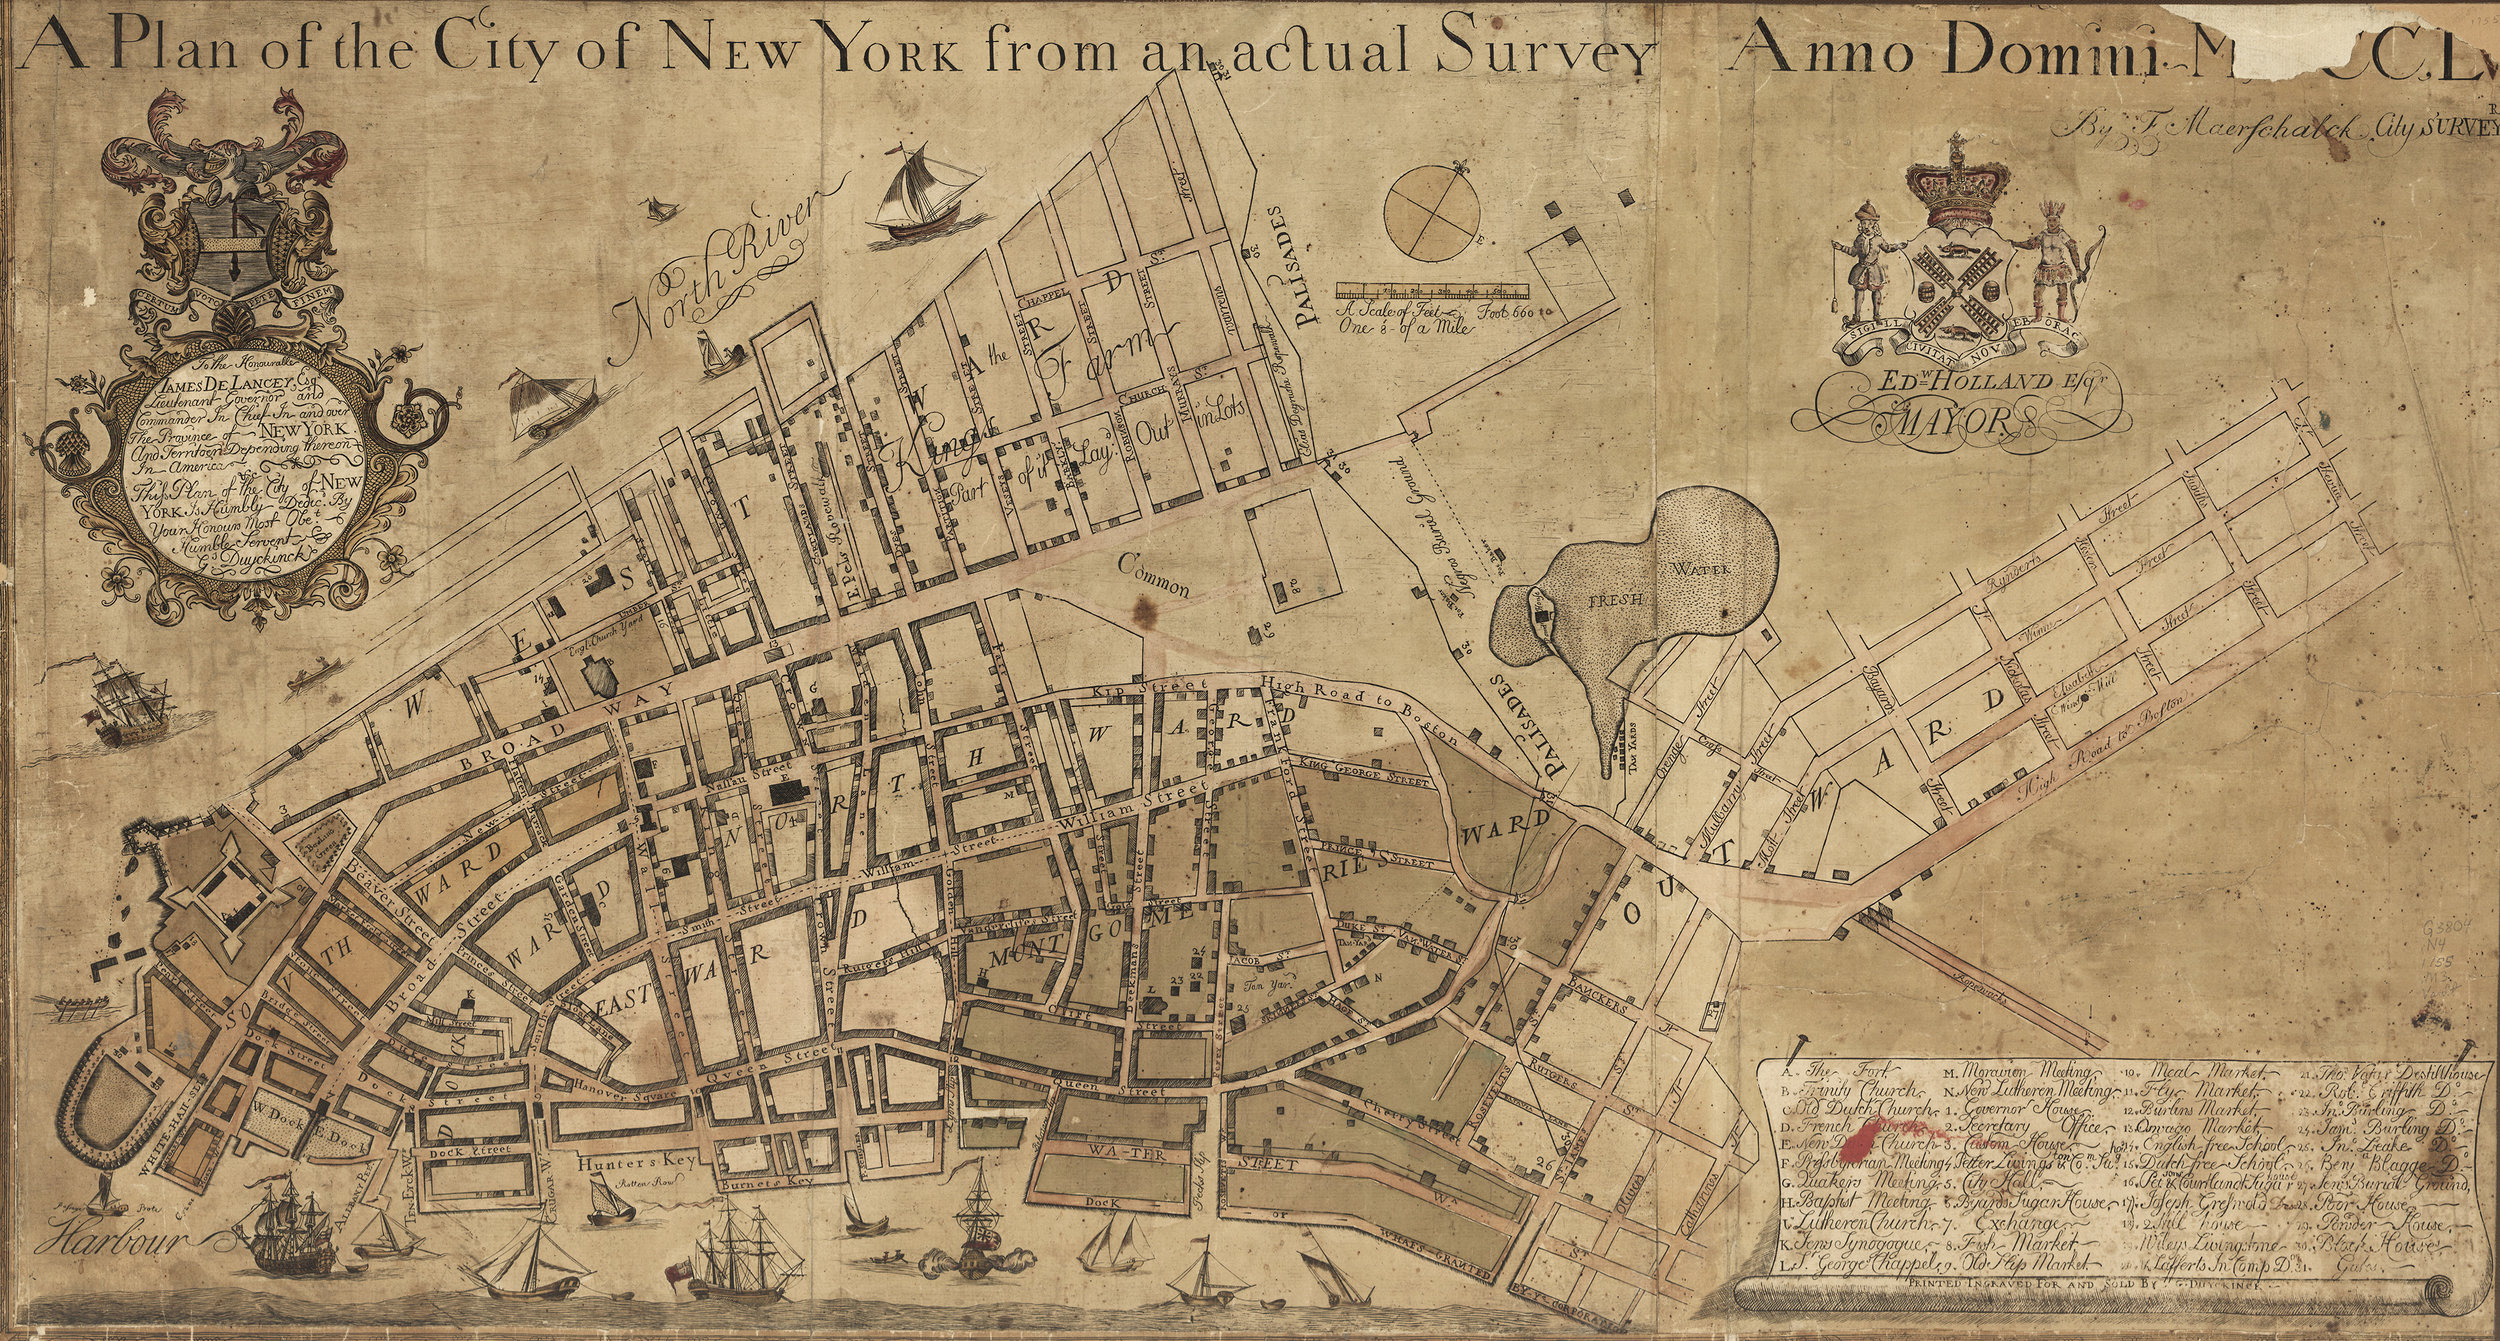 The Maerschalck Plan of 1754 shows the position of the new City Hall, along the old line of the wall, at the intersection of Broad Street (once the canal) and Wall Street. At the northern end of the city, roughly along what is now Chambers Street,is a new palisade wall. It was built to protect the English from the French in 1745, and lasted until 1763. Map courtesy  The Library of Congress .